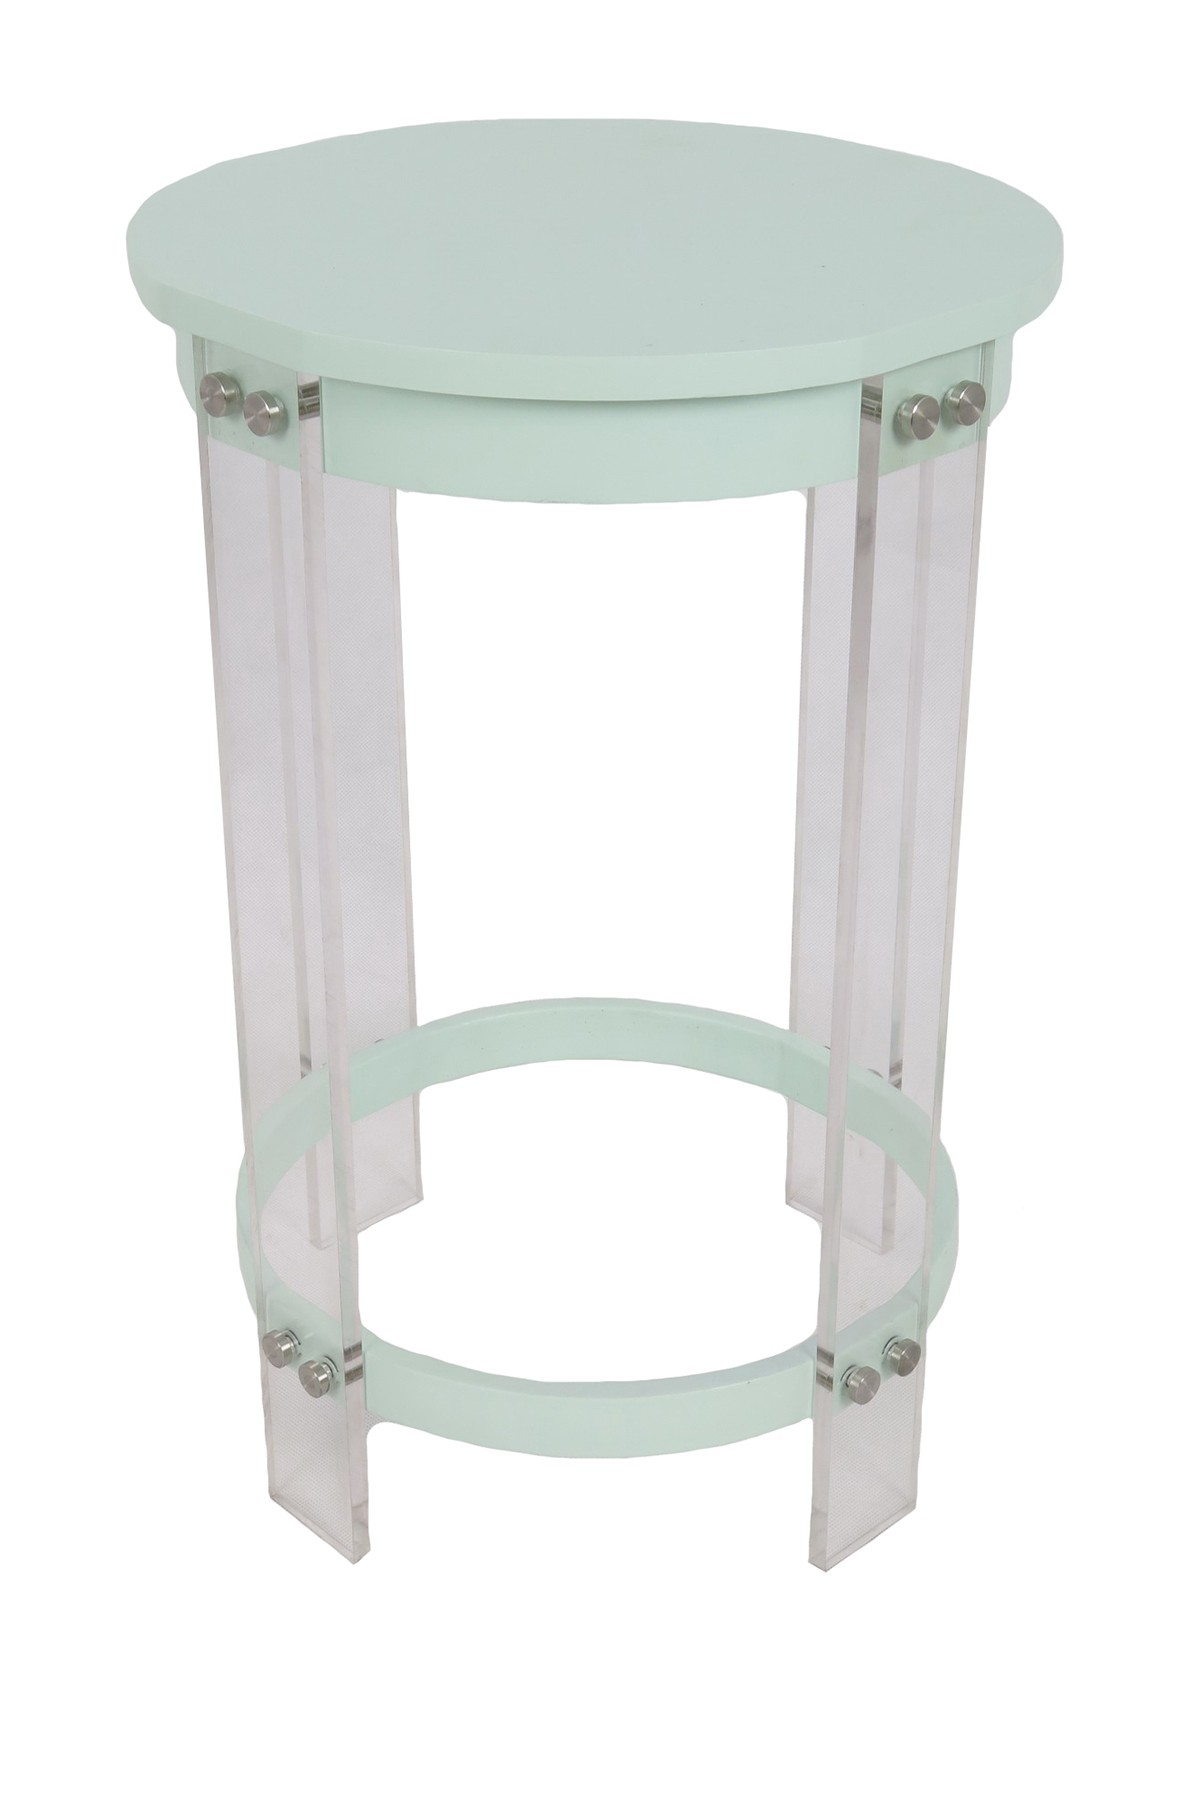 sagebrook home light blue acrylic mdf round accent table metal furniture and decor outdoor patio seating carpet tile edging strip french farmhouse stacking side tables screw feet